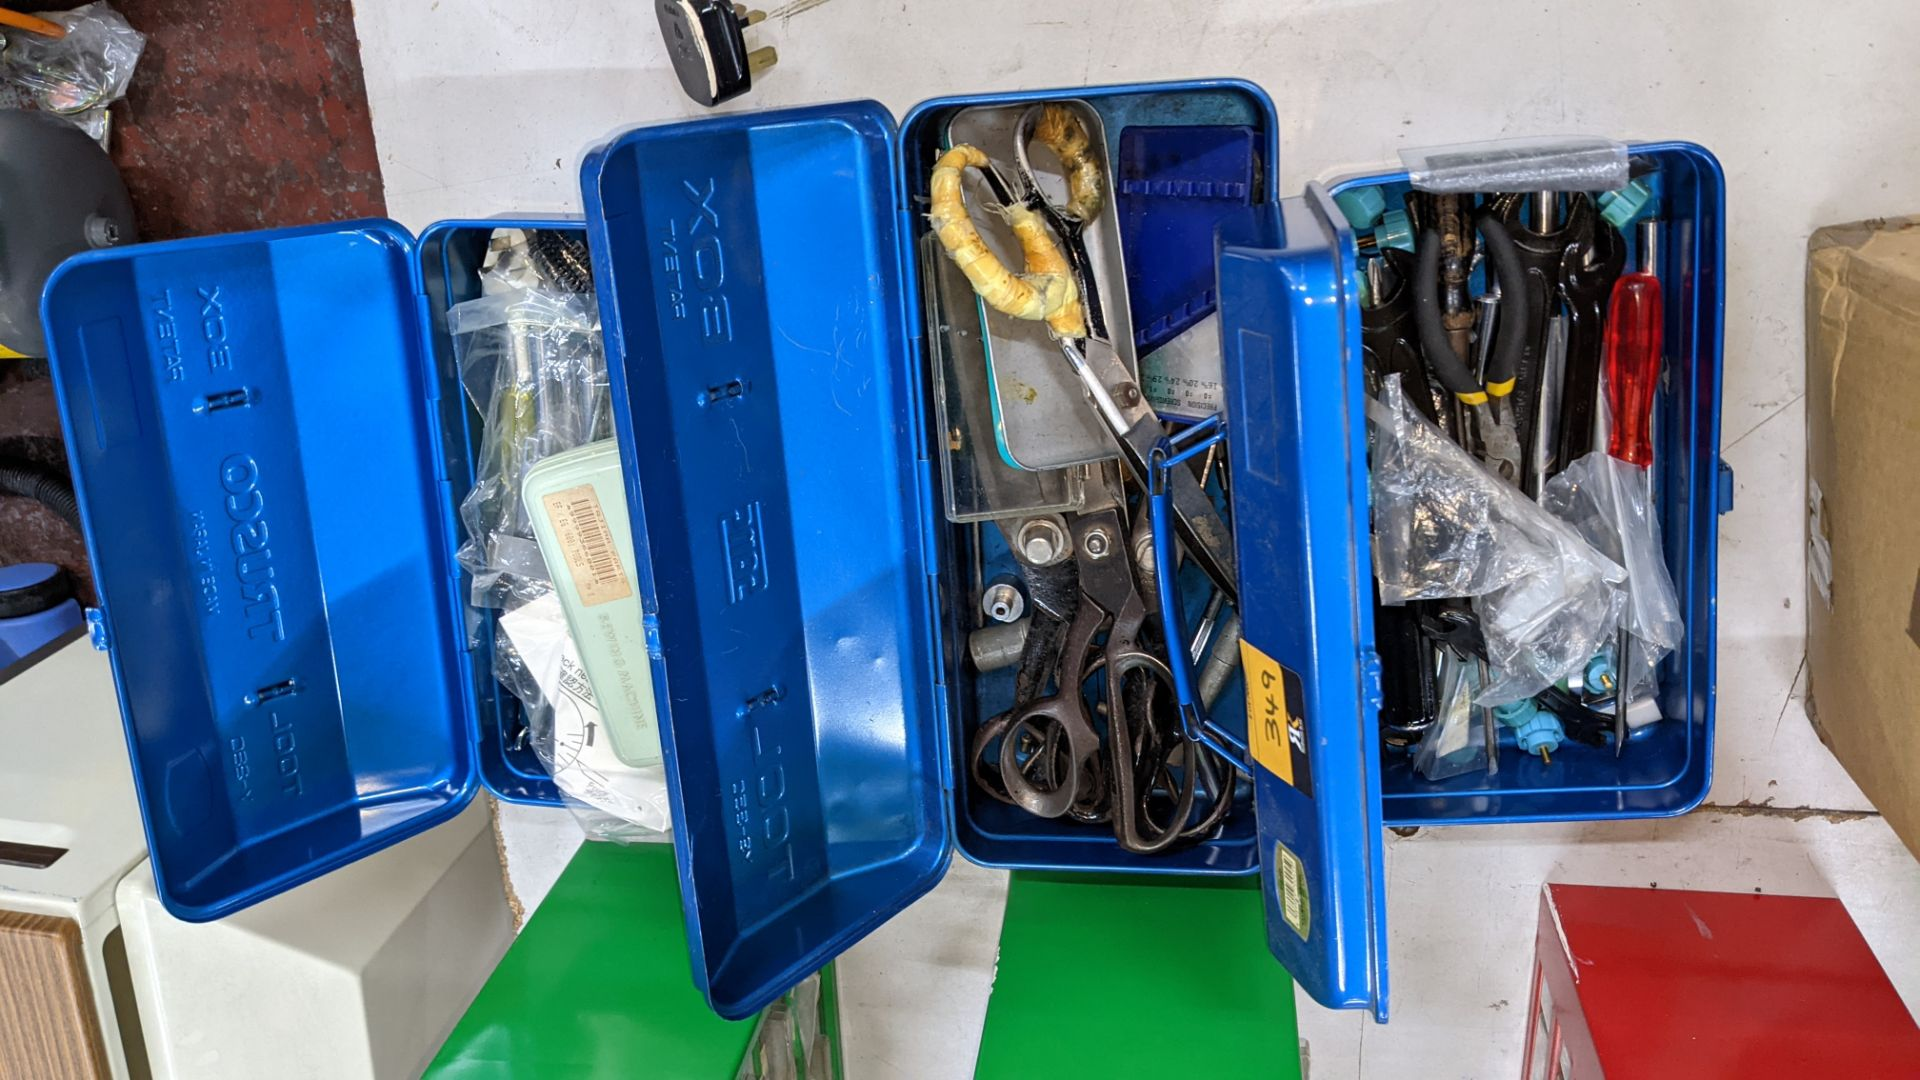 3 blue tool kits & their contents - Image 5 of 5